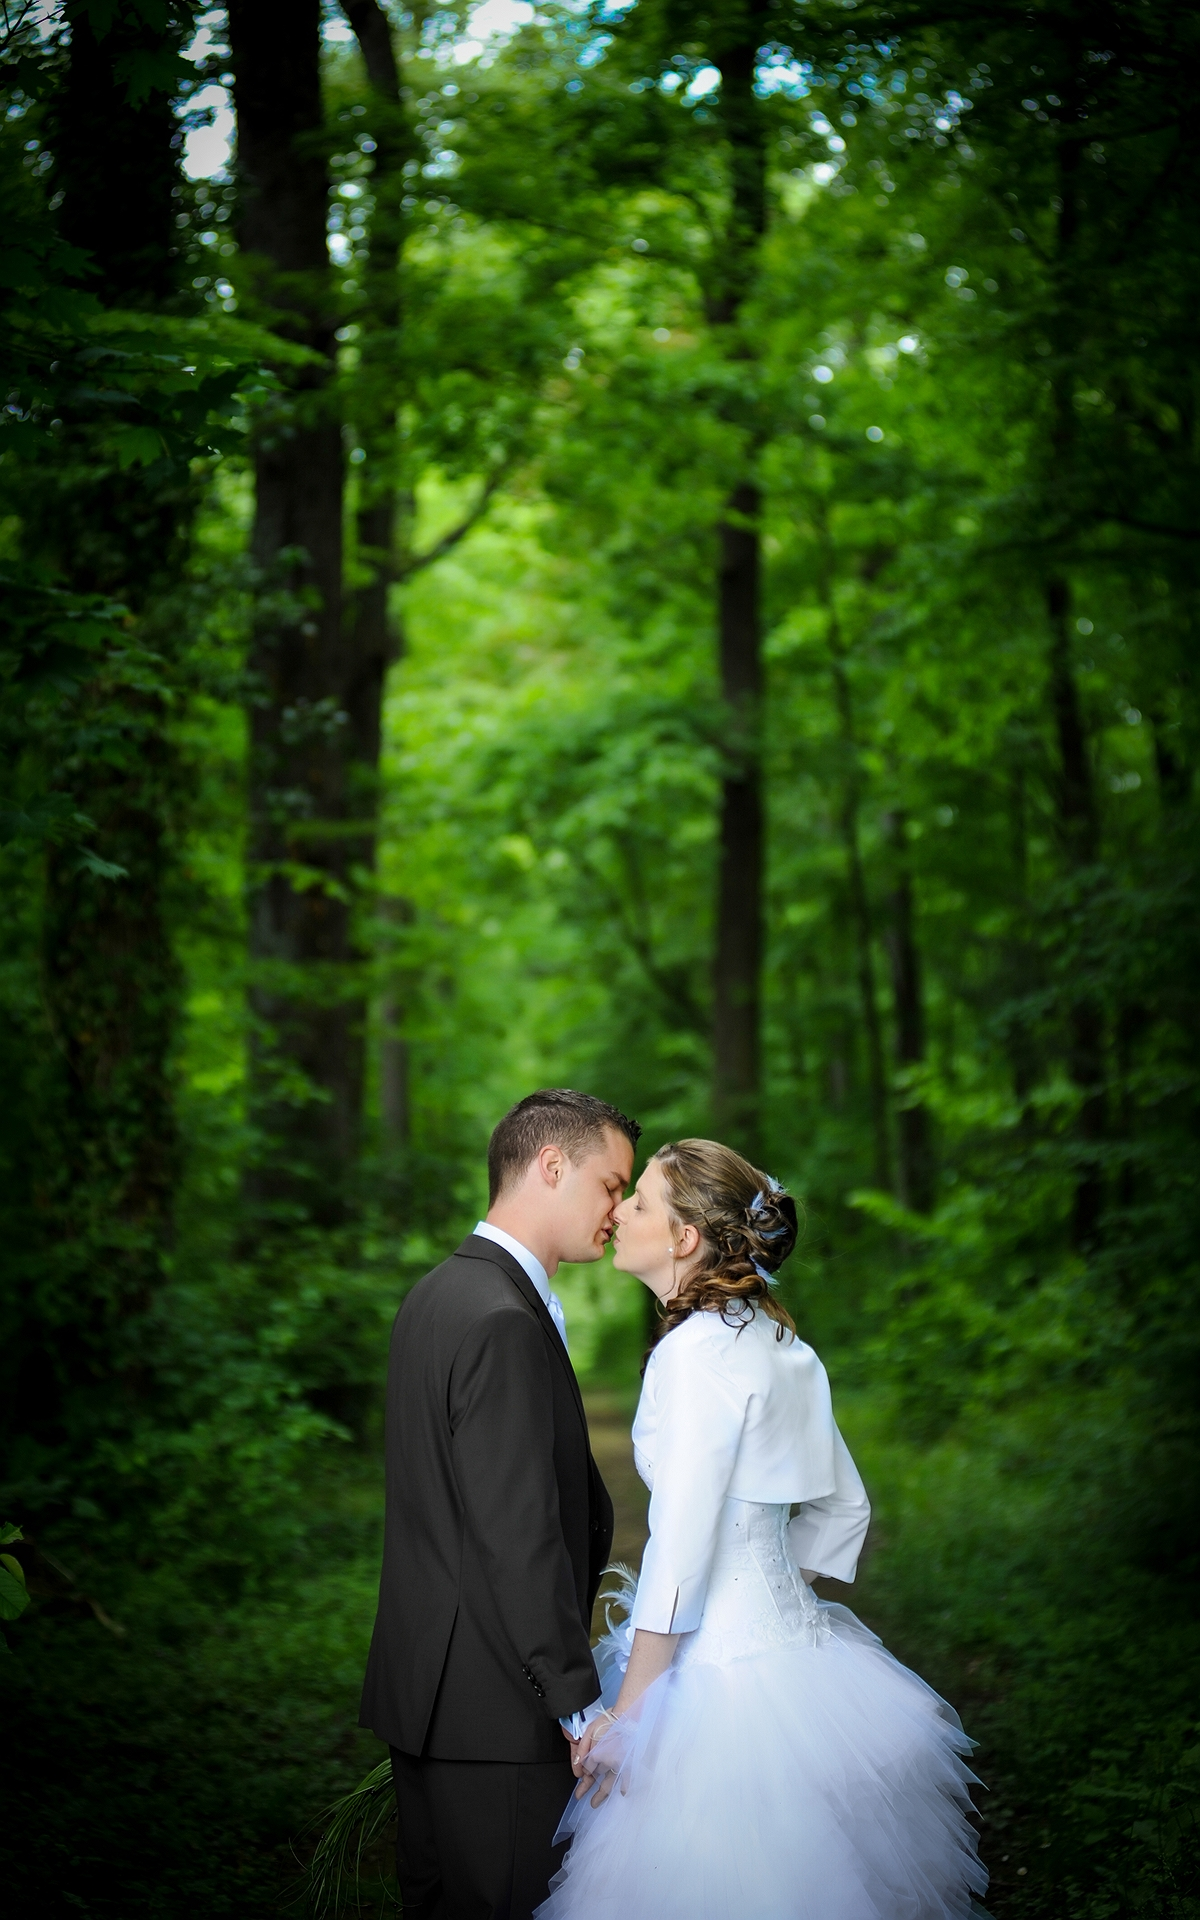 PHOTOGRAPHE MARIAGE AIN 01 - PHOTYS 021 (Sides 41-42)